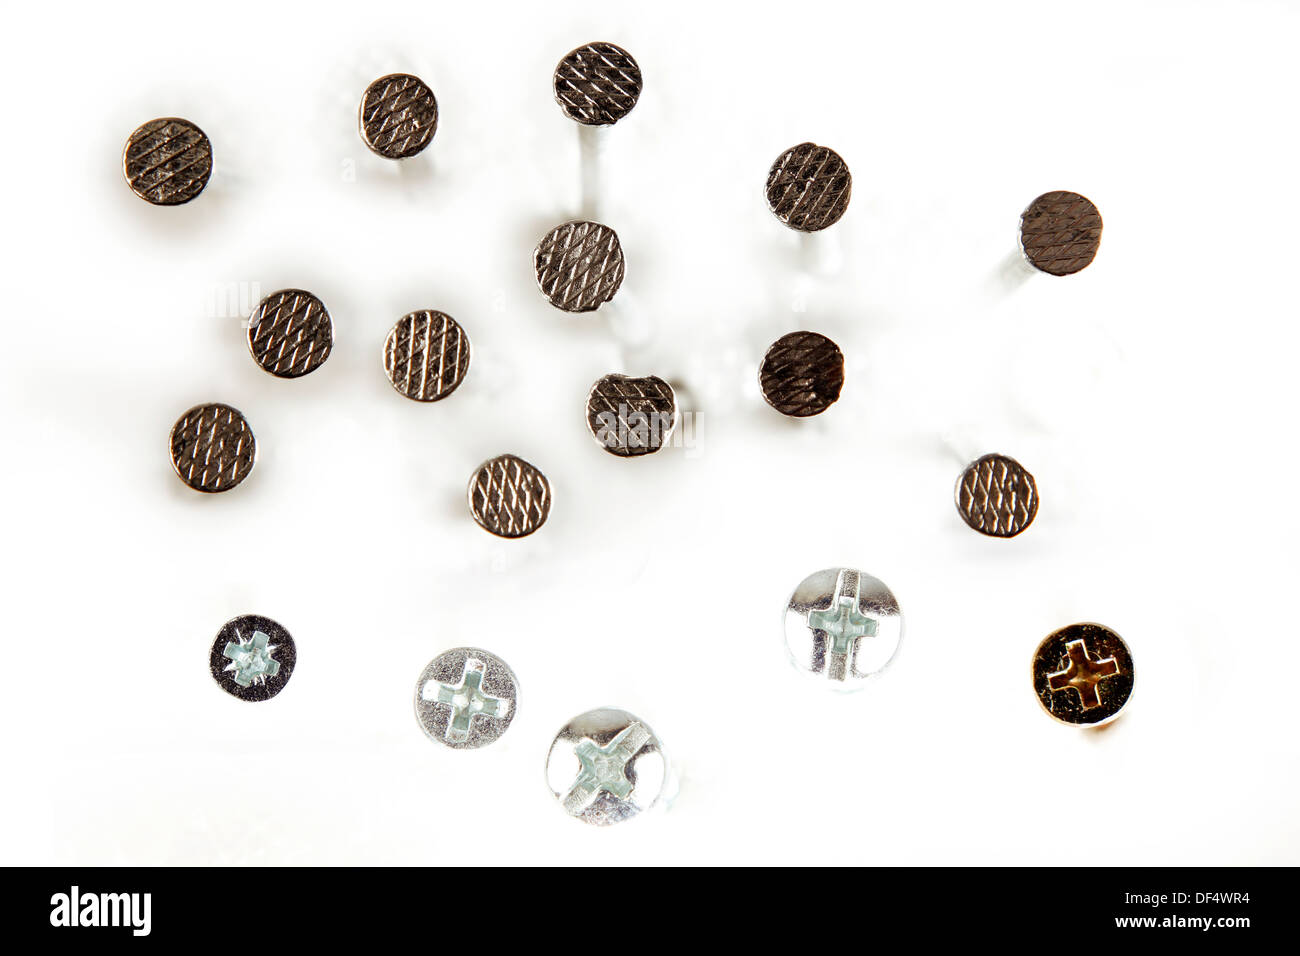 Closeup of nail and screw heads - Stock Image